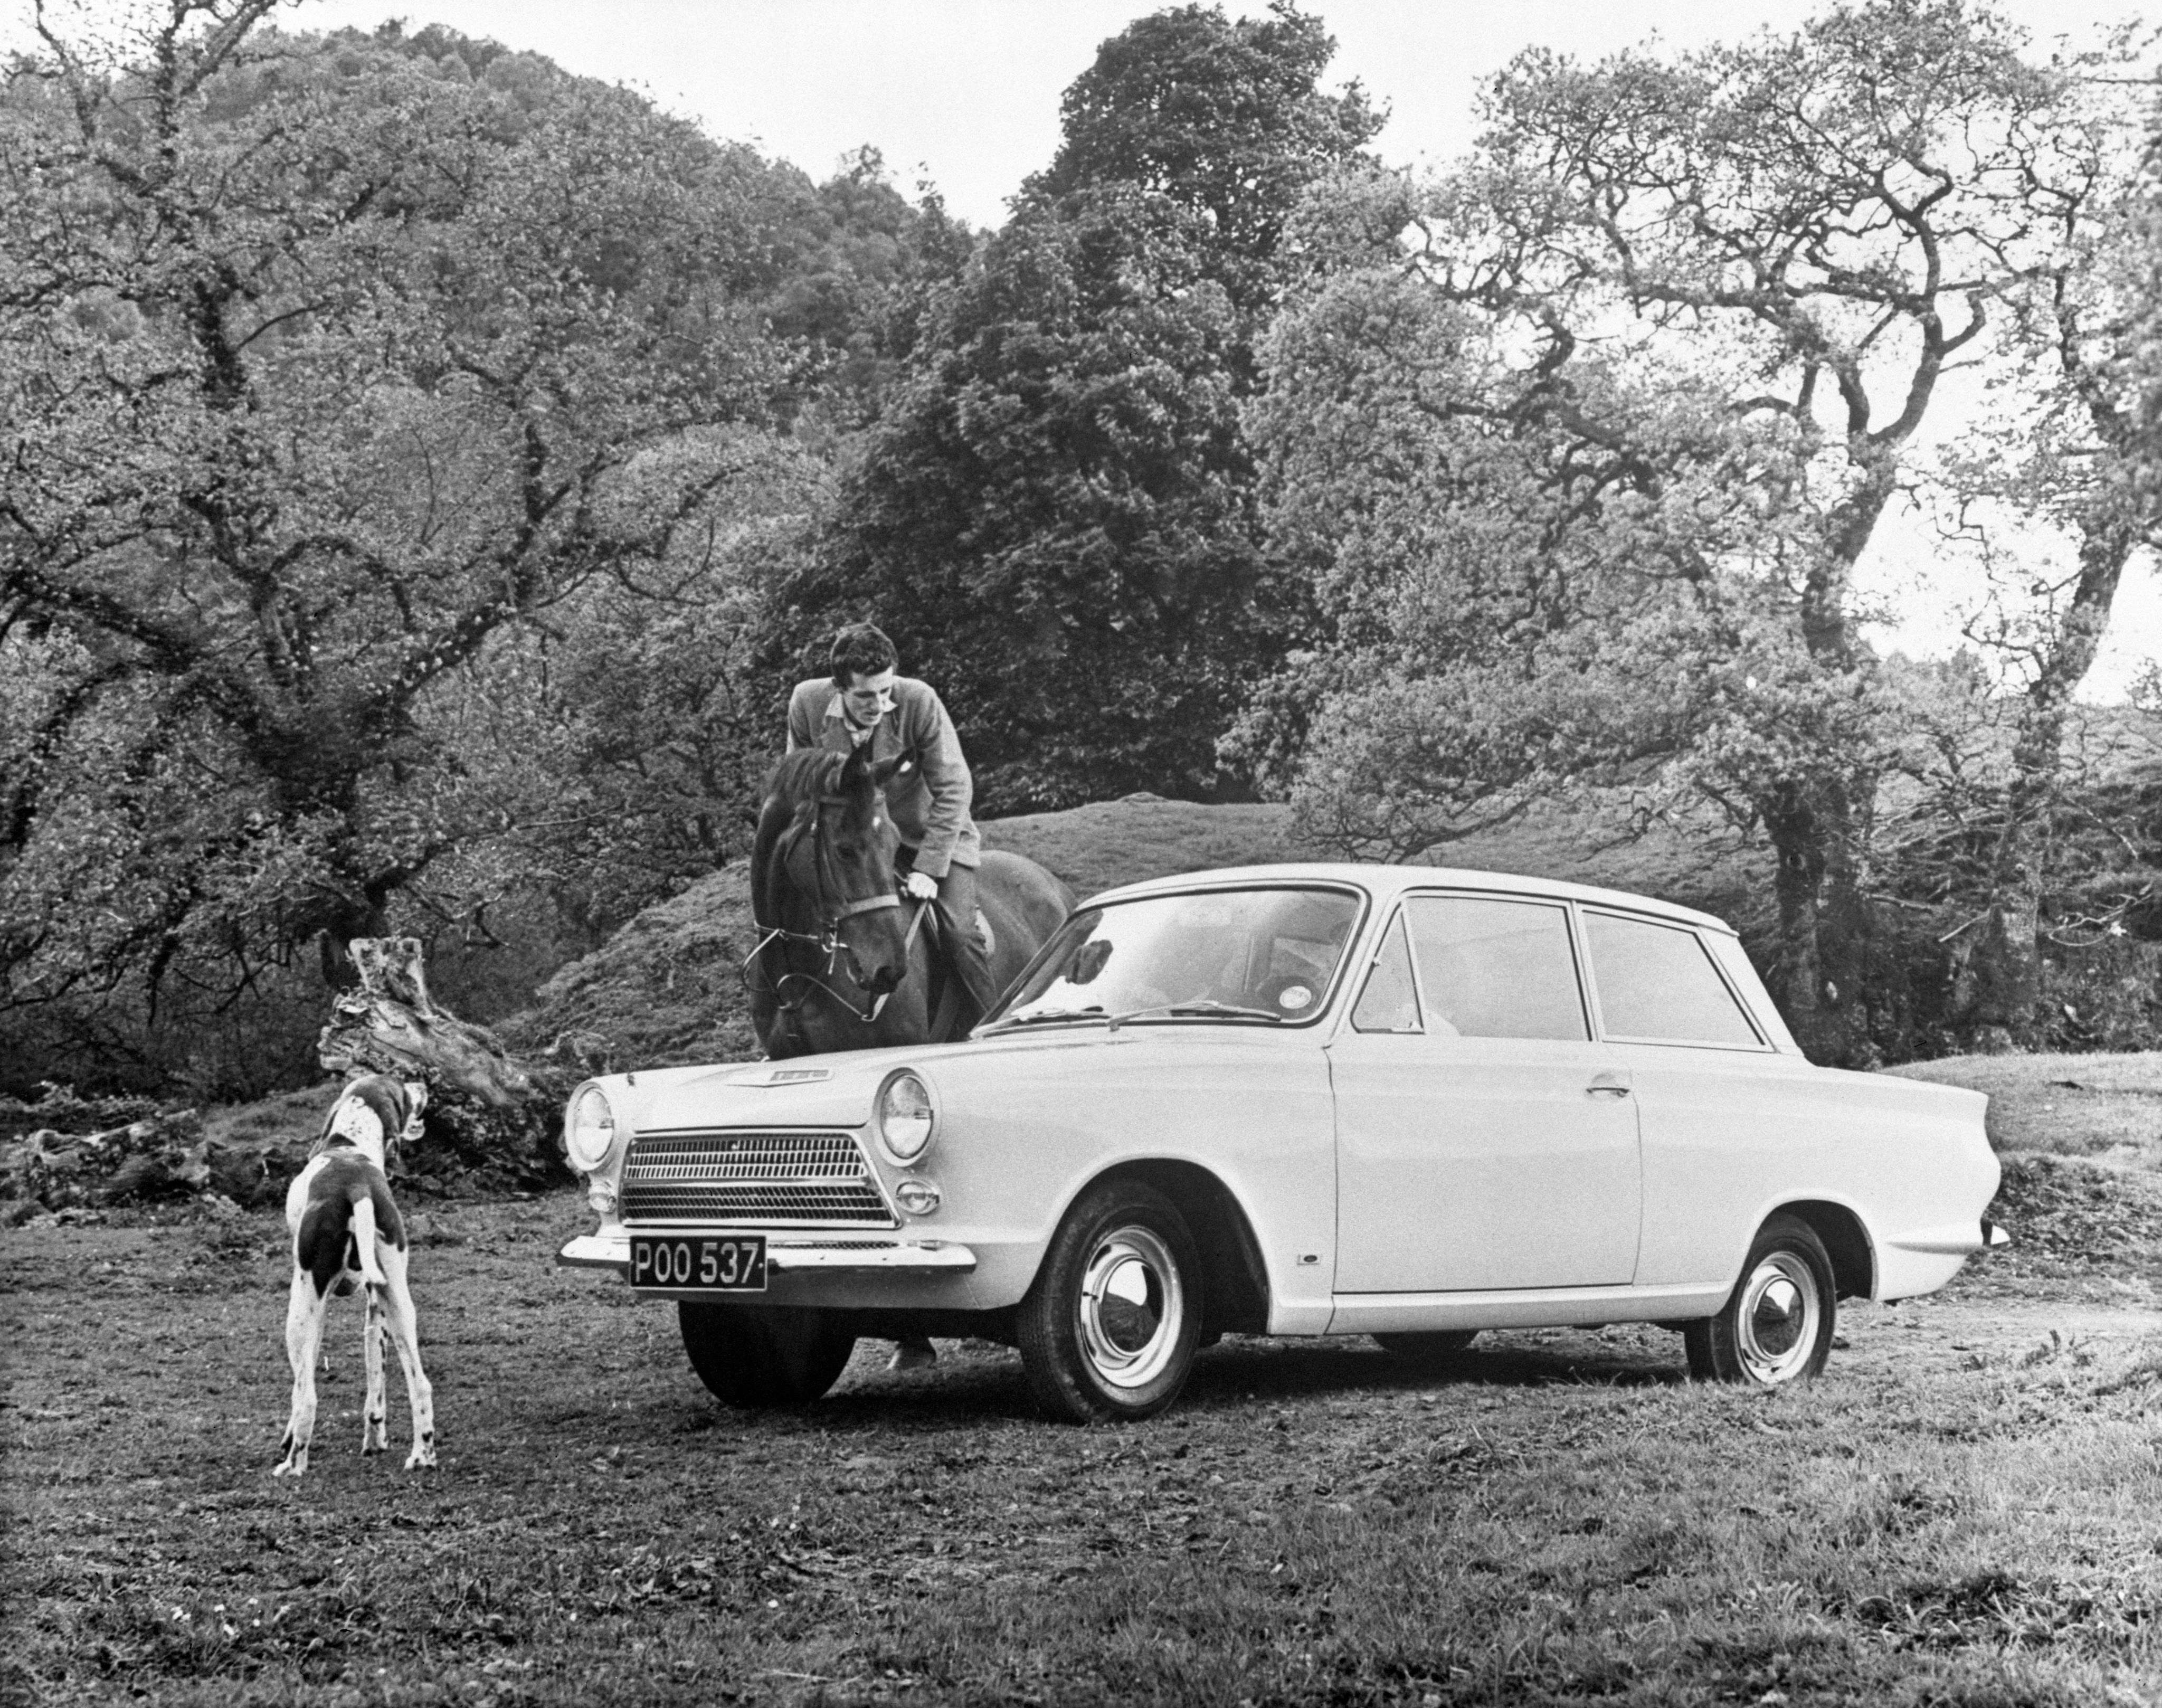 Publicity picture for the brand new Ford Consul Cortina, 1962.